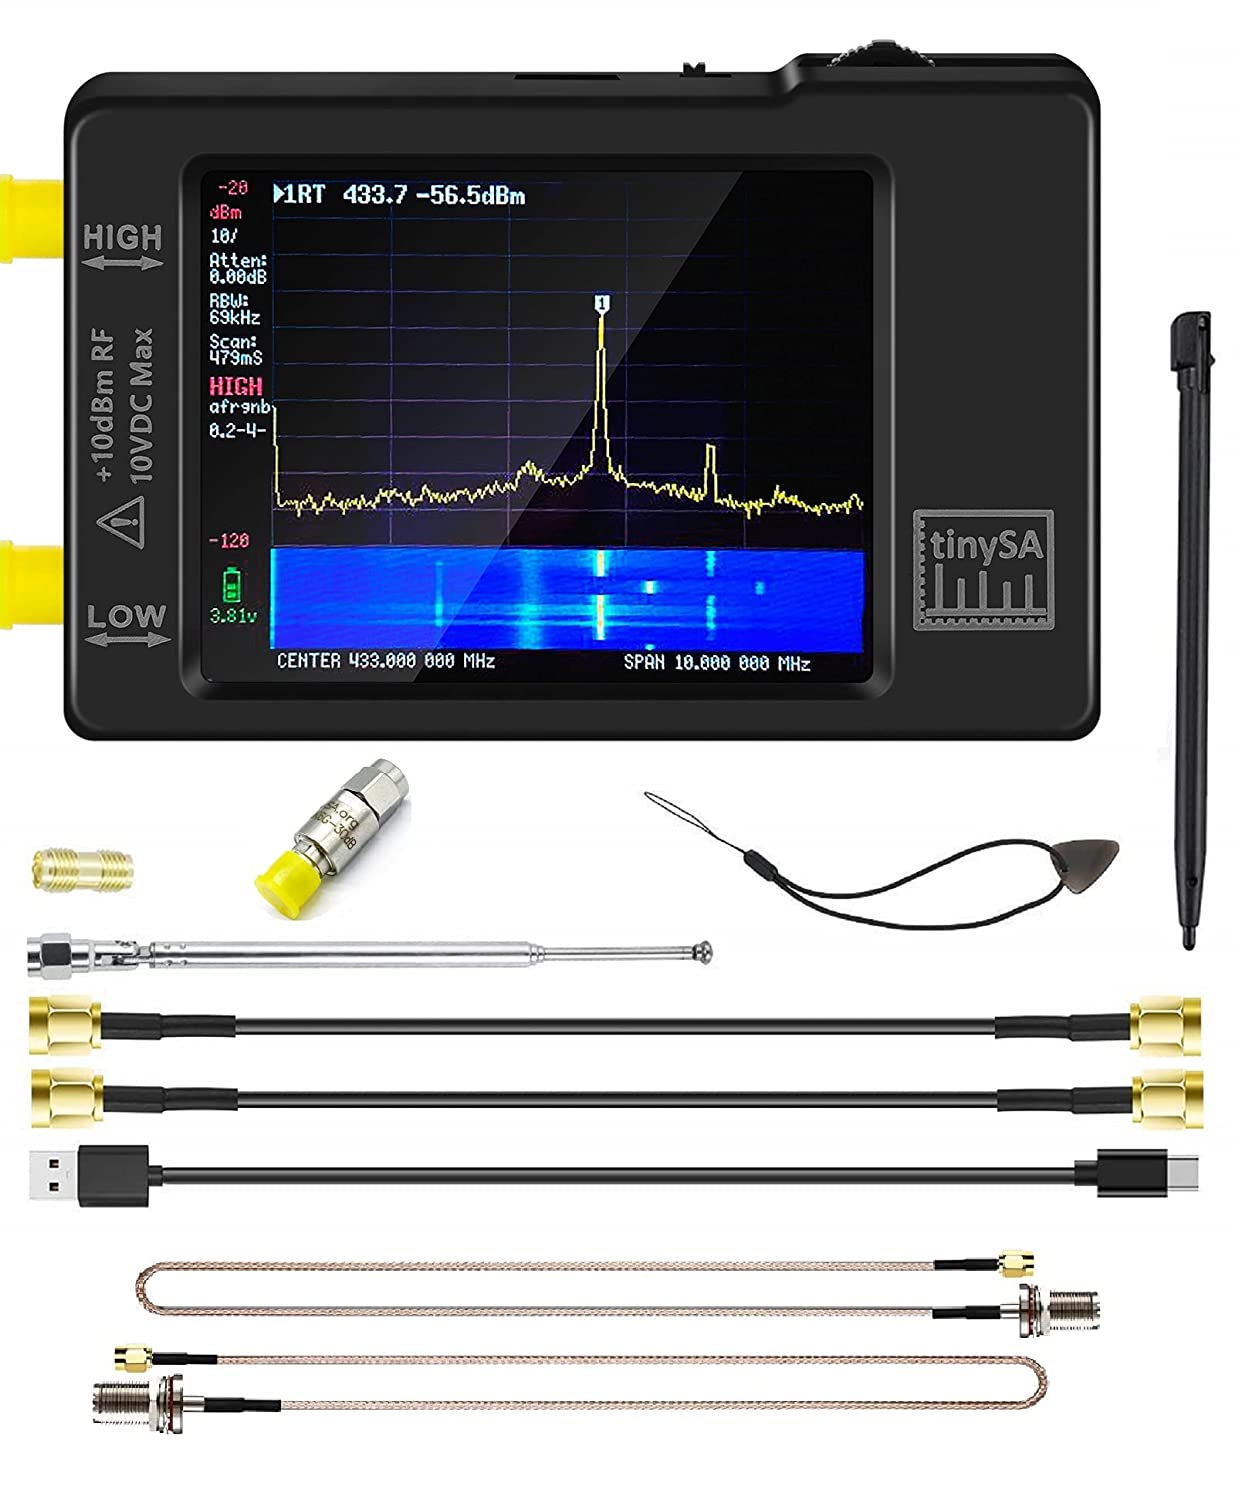 Portable tinySA Spectrum Analyzer - AURSINC Handheld Frequency Analyzer V0.3.1 with Antenna SMA Male to UHF Female Cables & 30db Attenuator MF   HF   VHF UHF Input for 0.1MHZ-960MHz 2.8'' Touchscreen